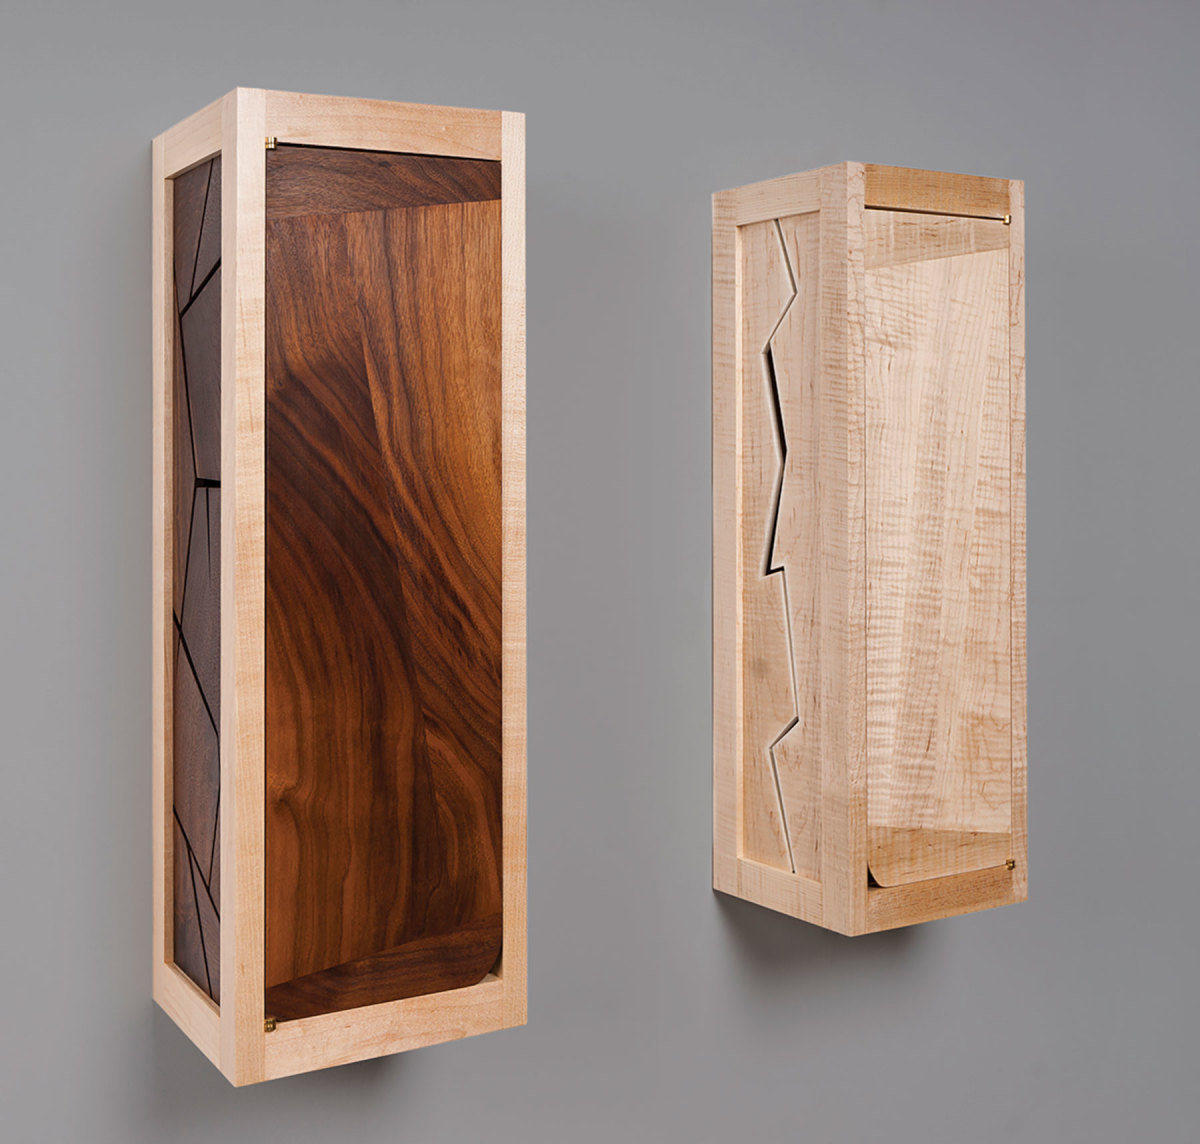 Wall cabinets by NHFMA member Leah Woods